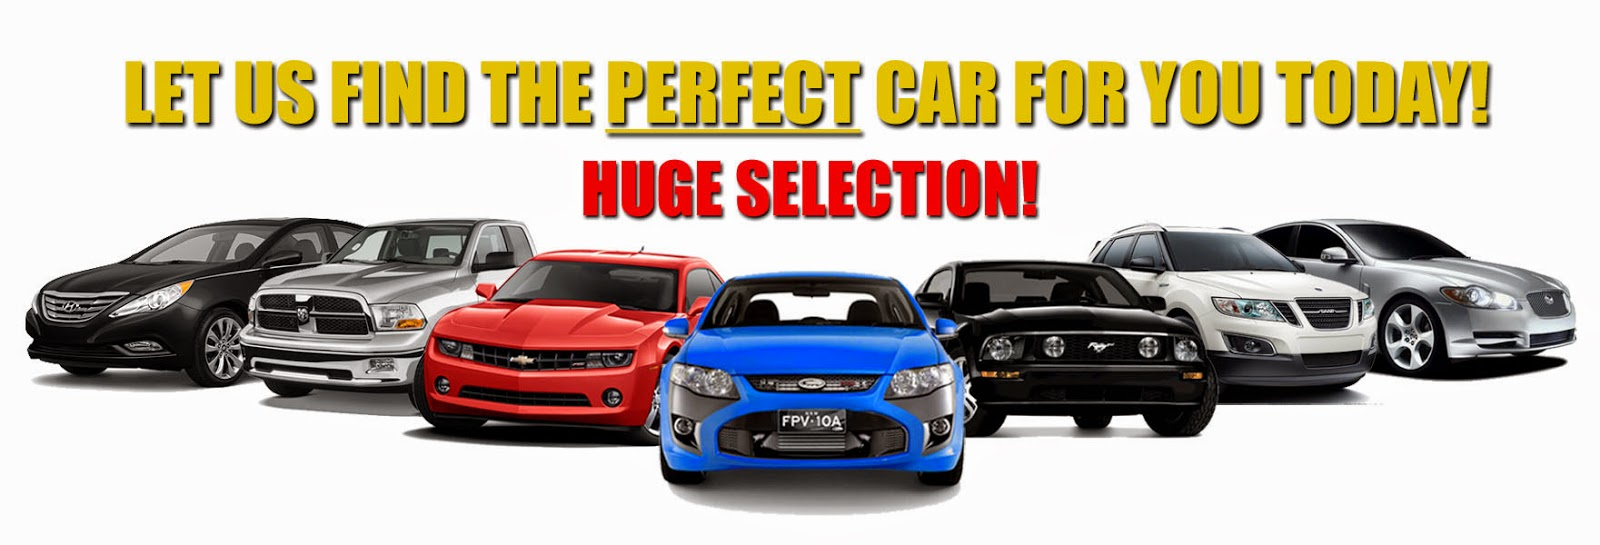 Do Used Car Sales Count In GDP - Visual effects artist decides to sell his car creates best used car advert ever